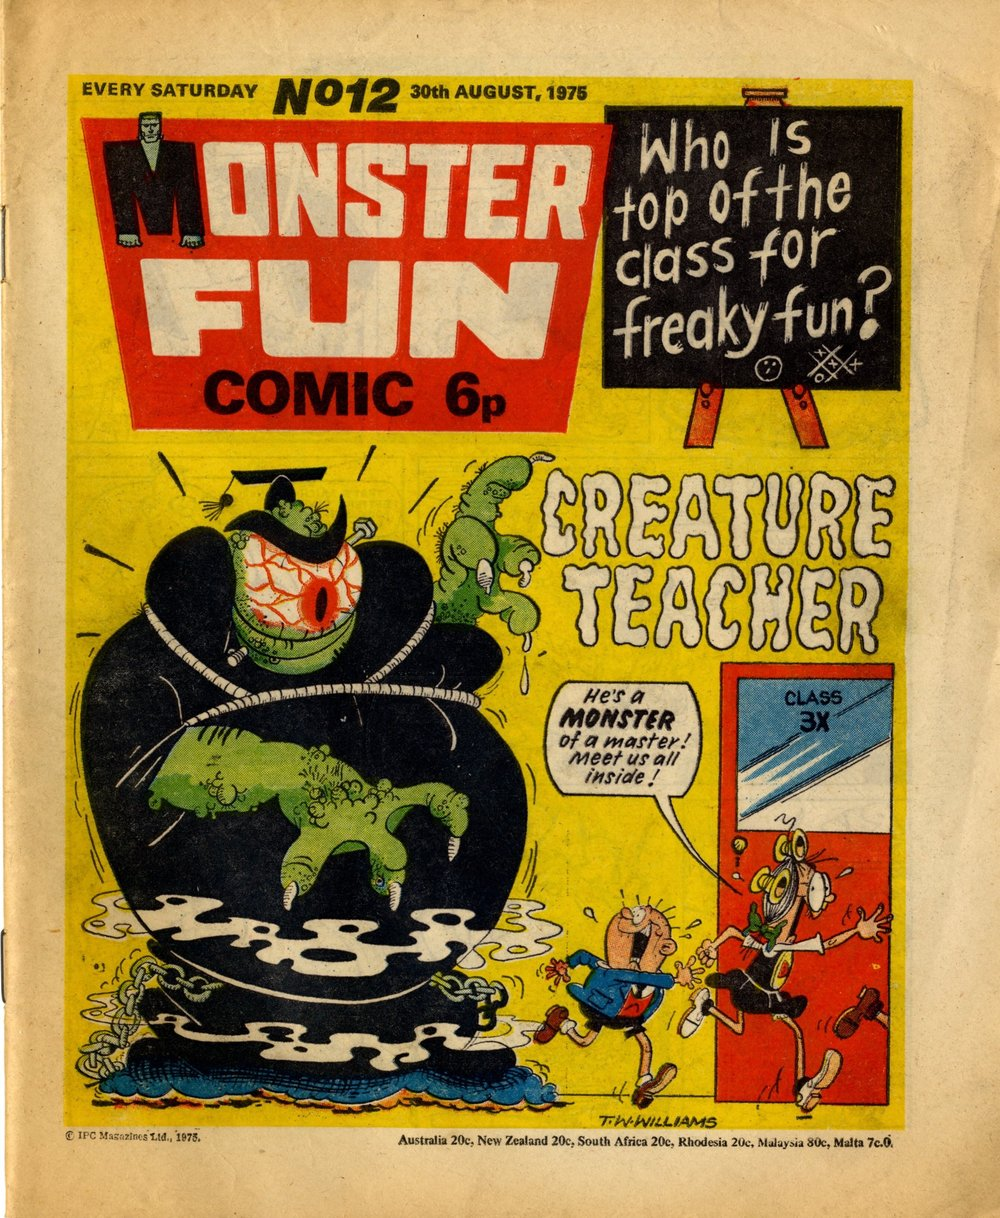 30 August 1975: Monster Fun (Creature Teacher: Tom Williams (artist))